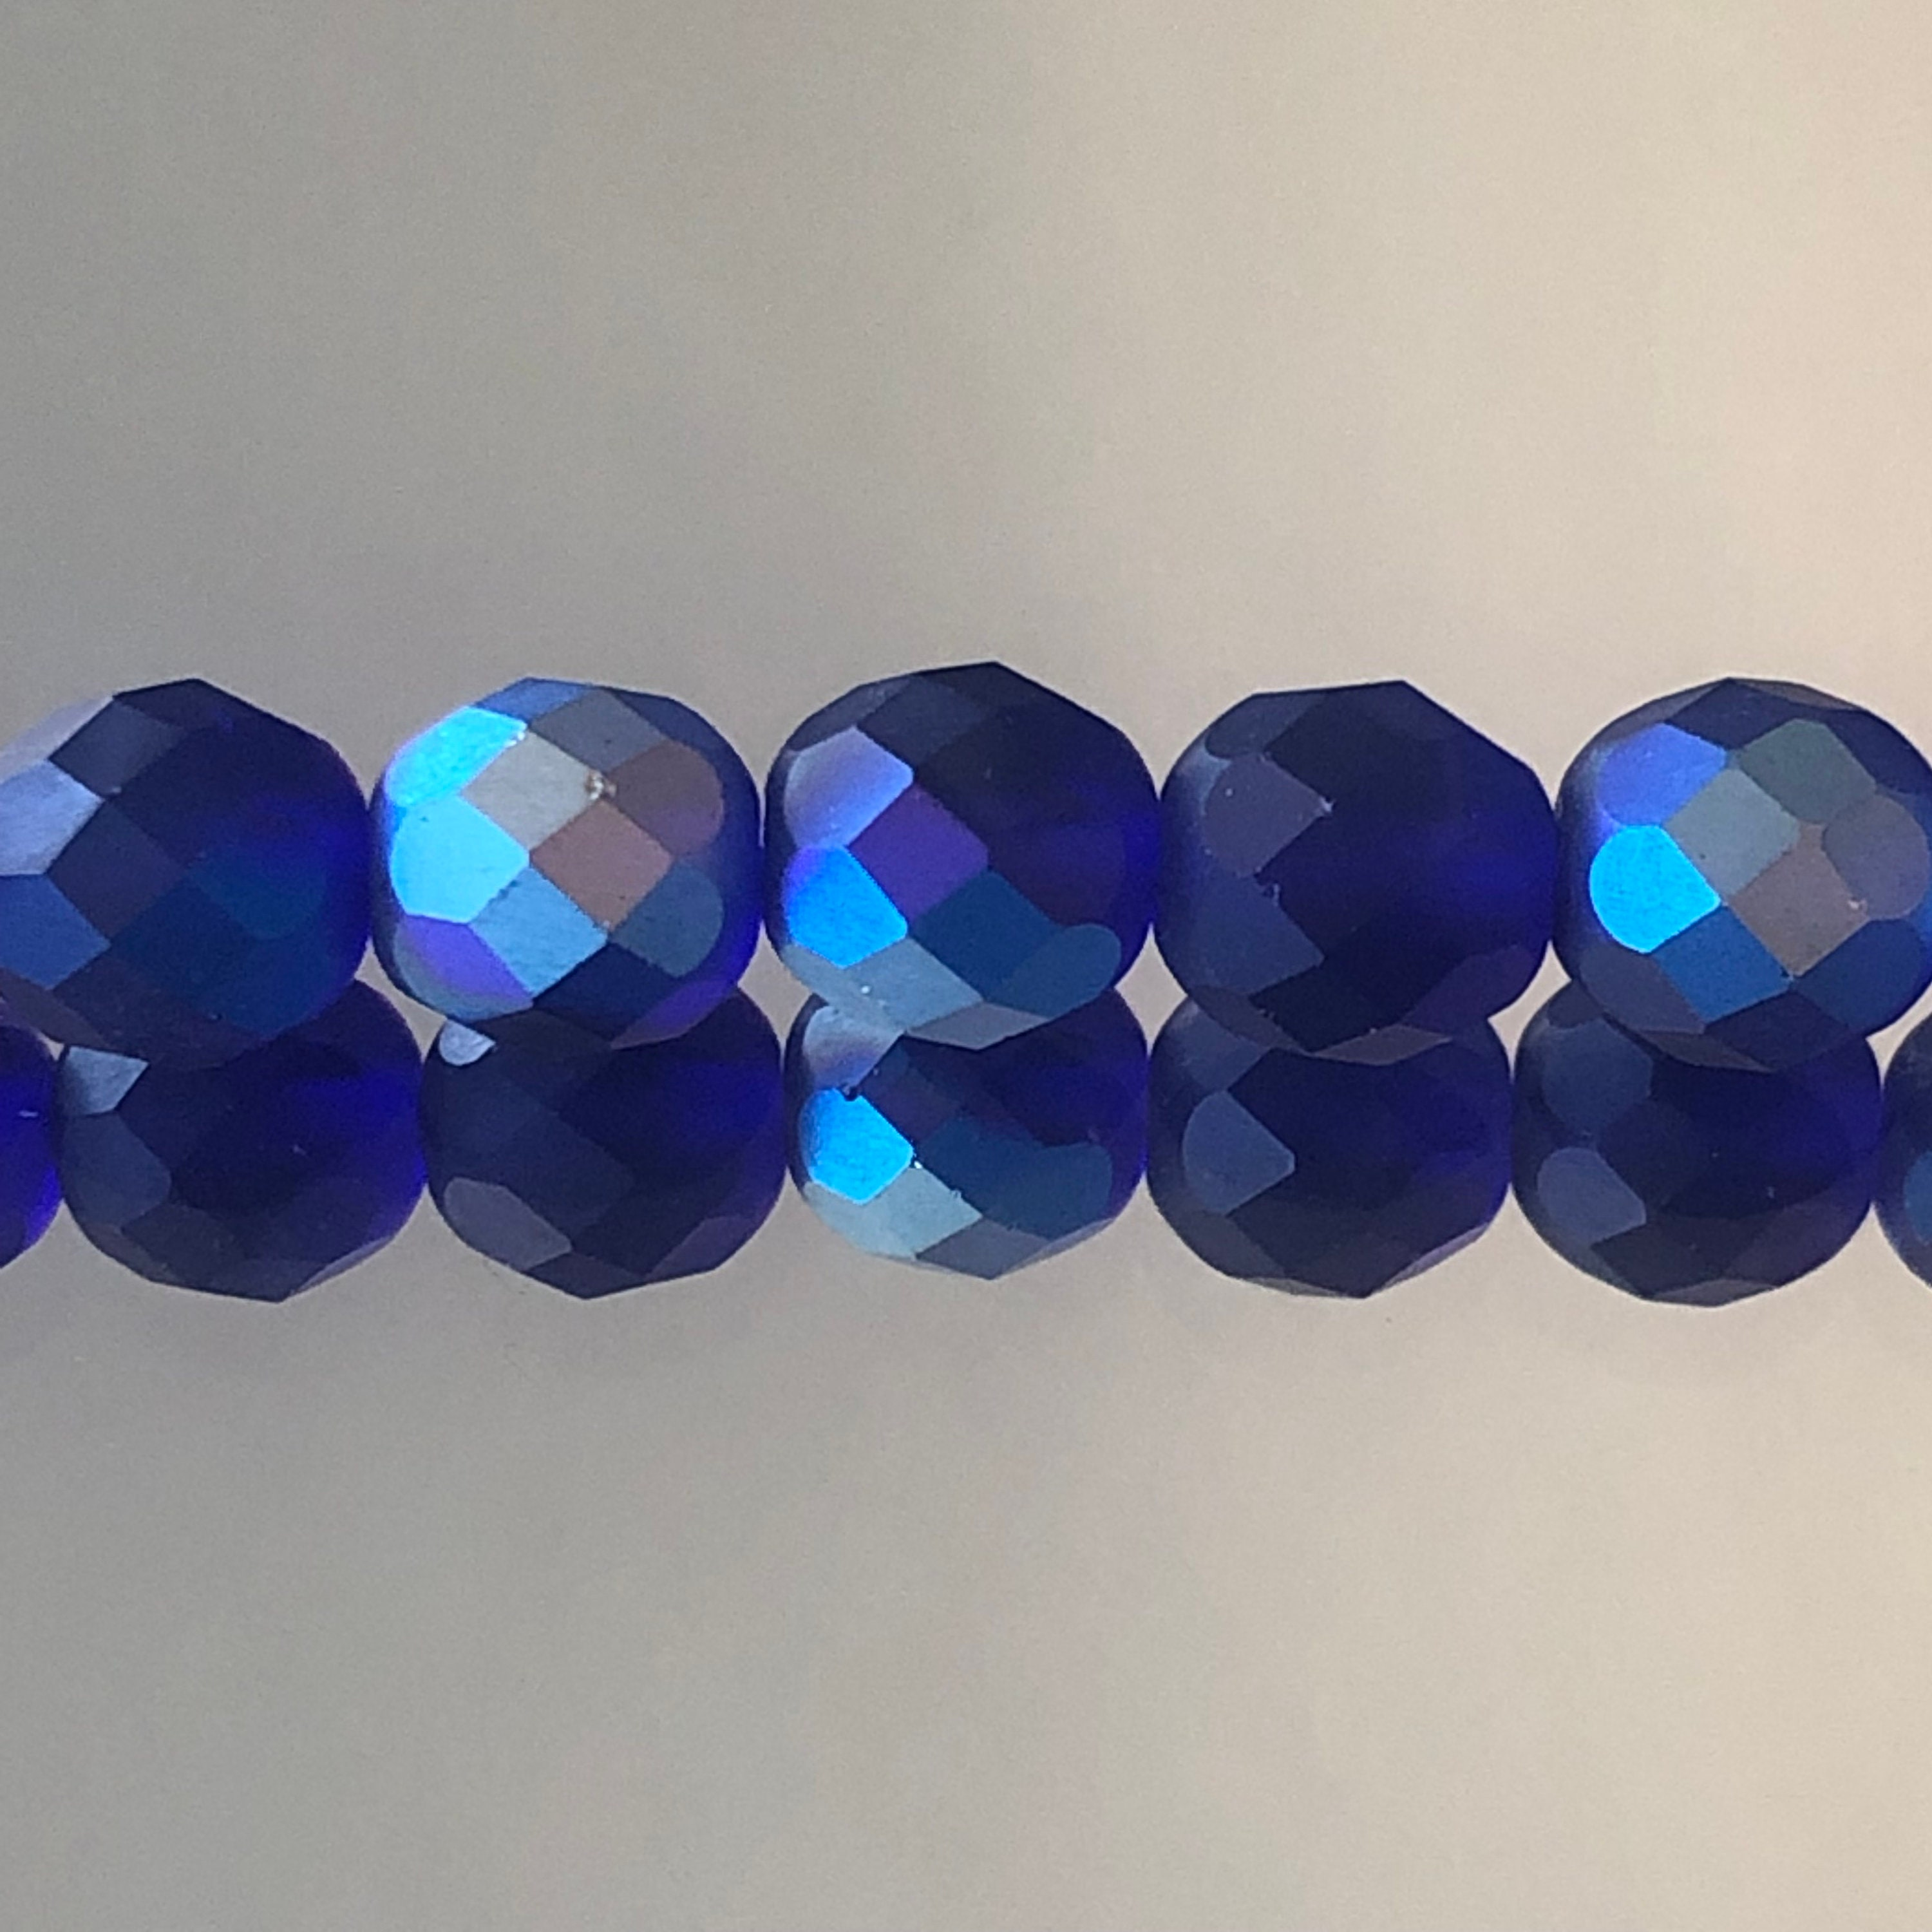 Crystal Clear AB 50 6mm Round Faceted Fire Polish Czech Glass Beads